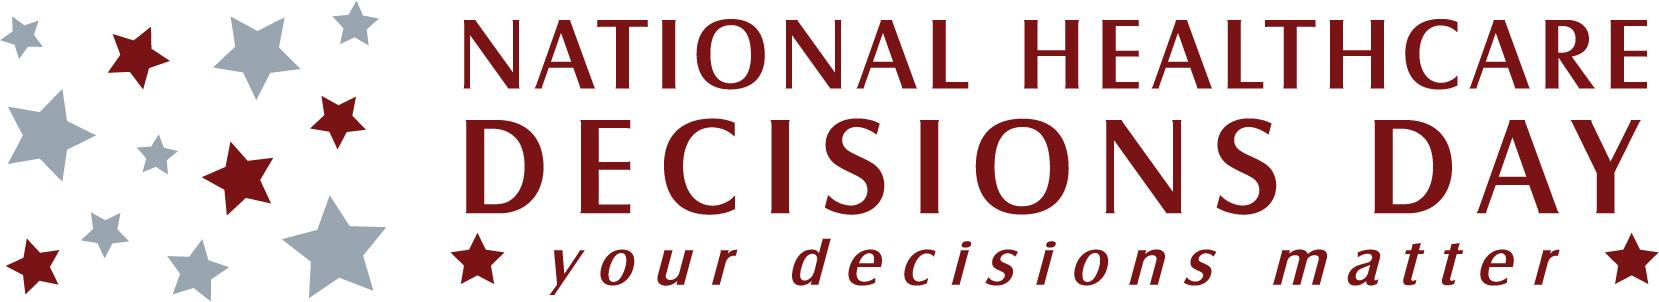 National-healthcare-decisions-day